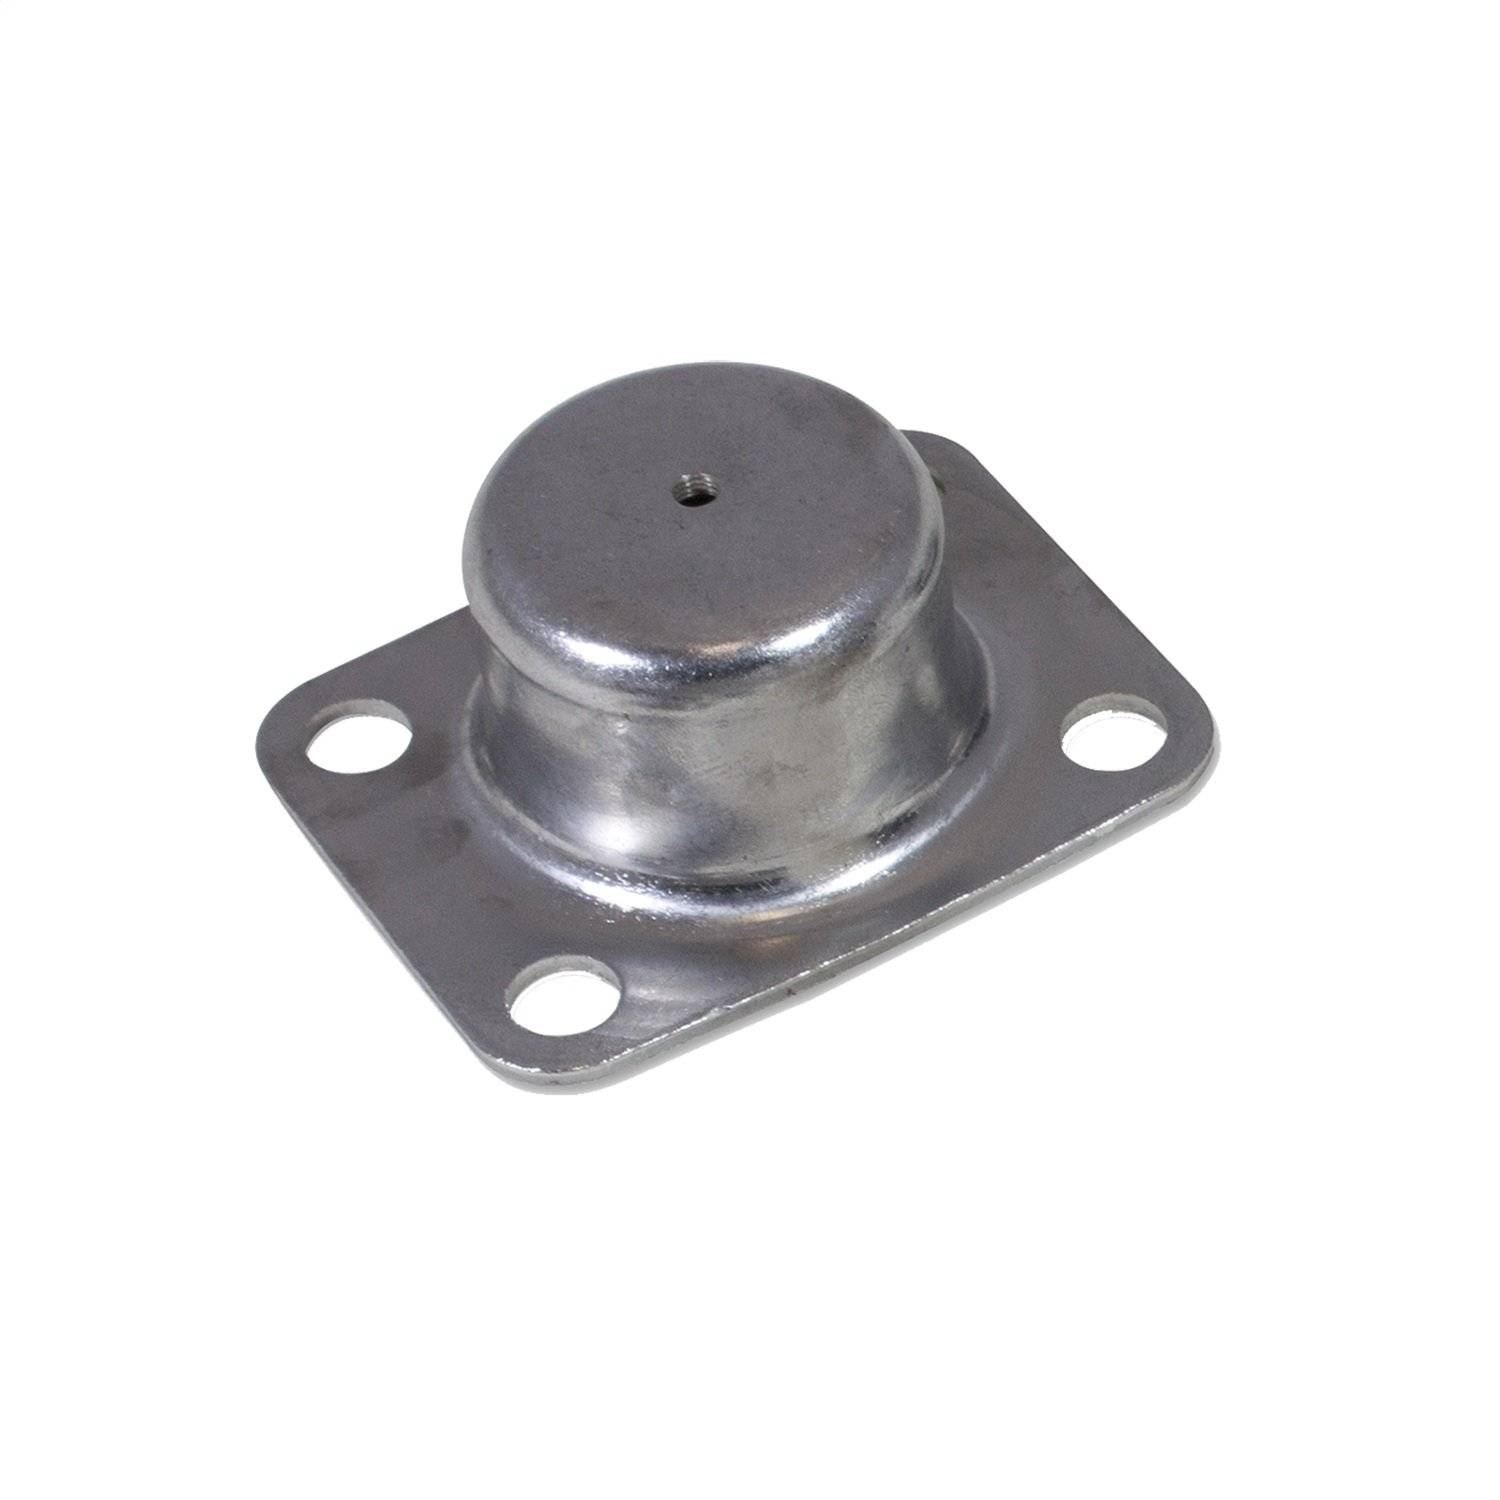 Yukon (YP KP-008) Upper Replacement King-Pin Bushing Spring Retainer Place for Dana 60 Differential